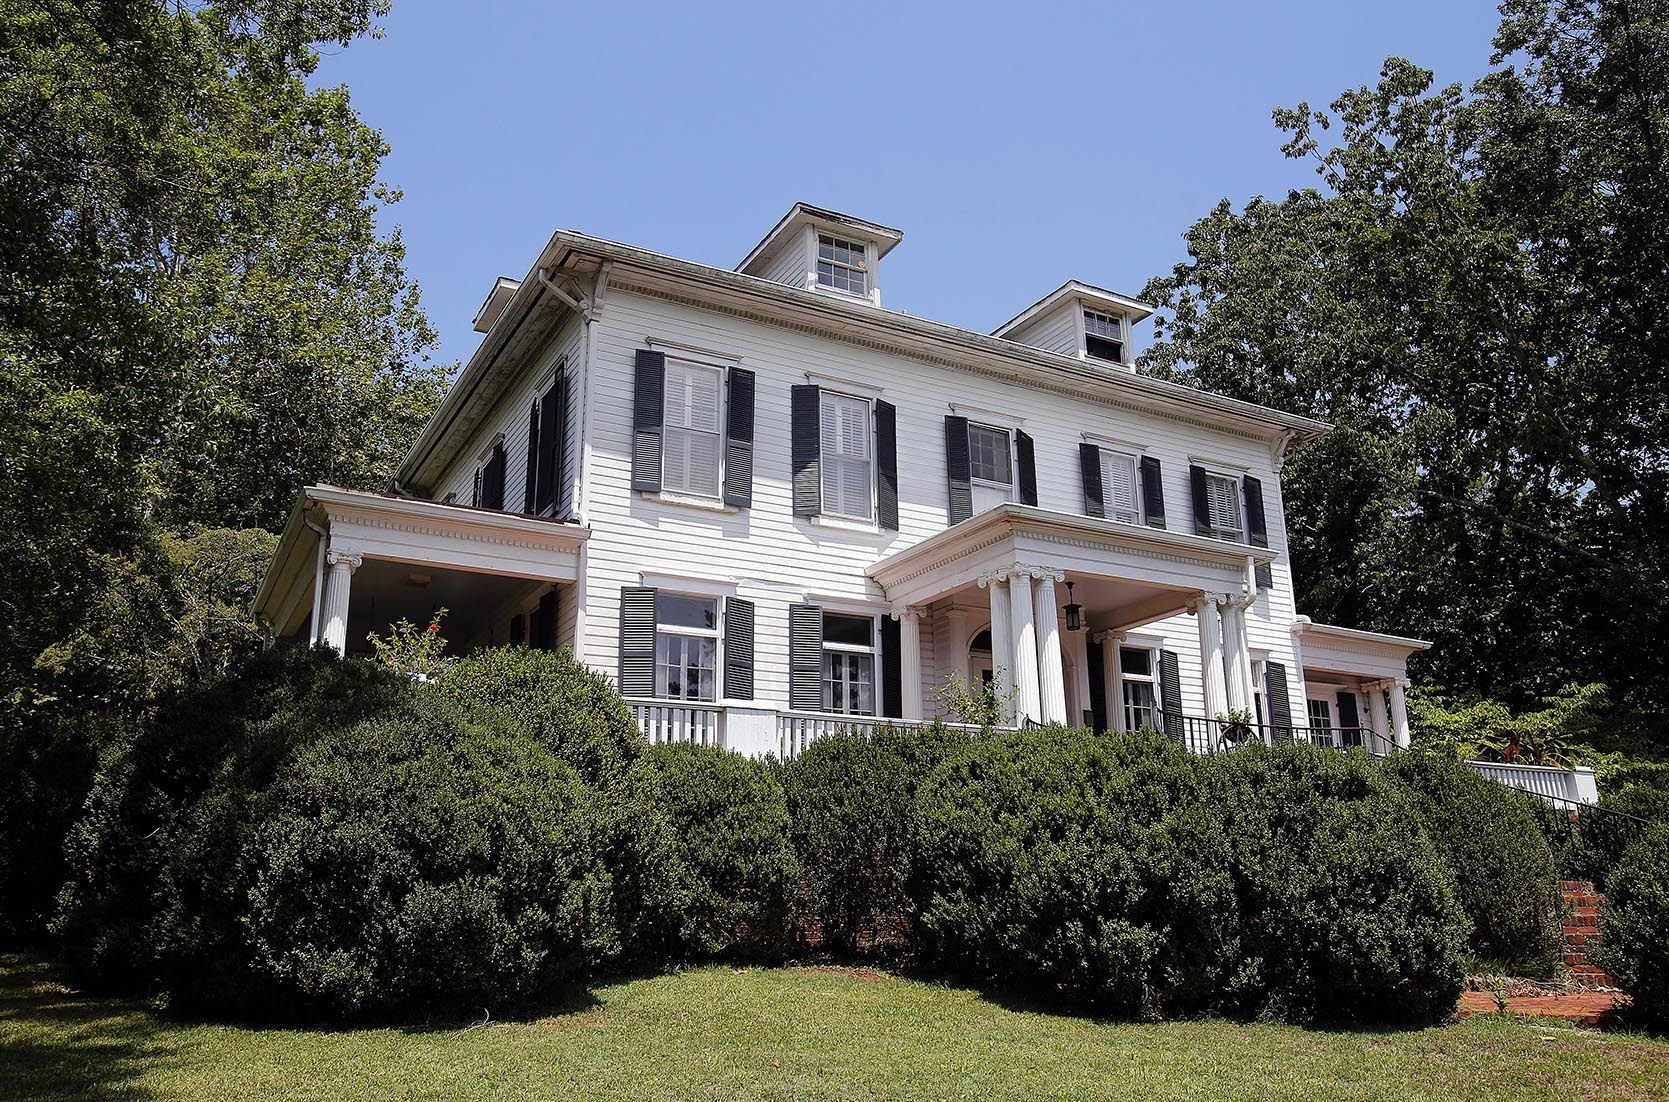 Inspiring Anniston Founder Samuel Historic Home Finds New Life As A Lifeandhome Coupon Code Life Home Discount houzz-03 Life And Home